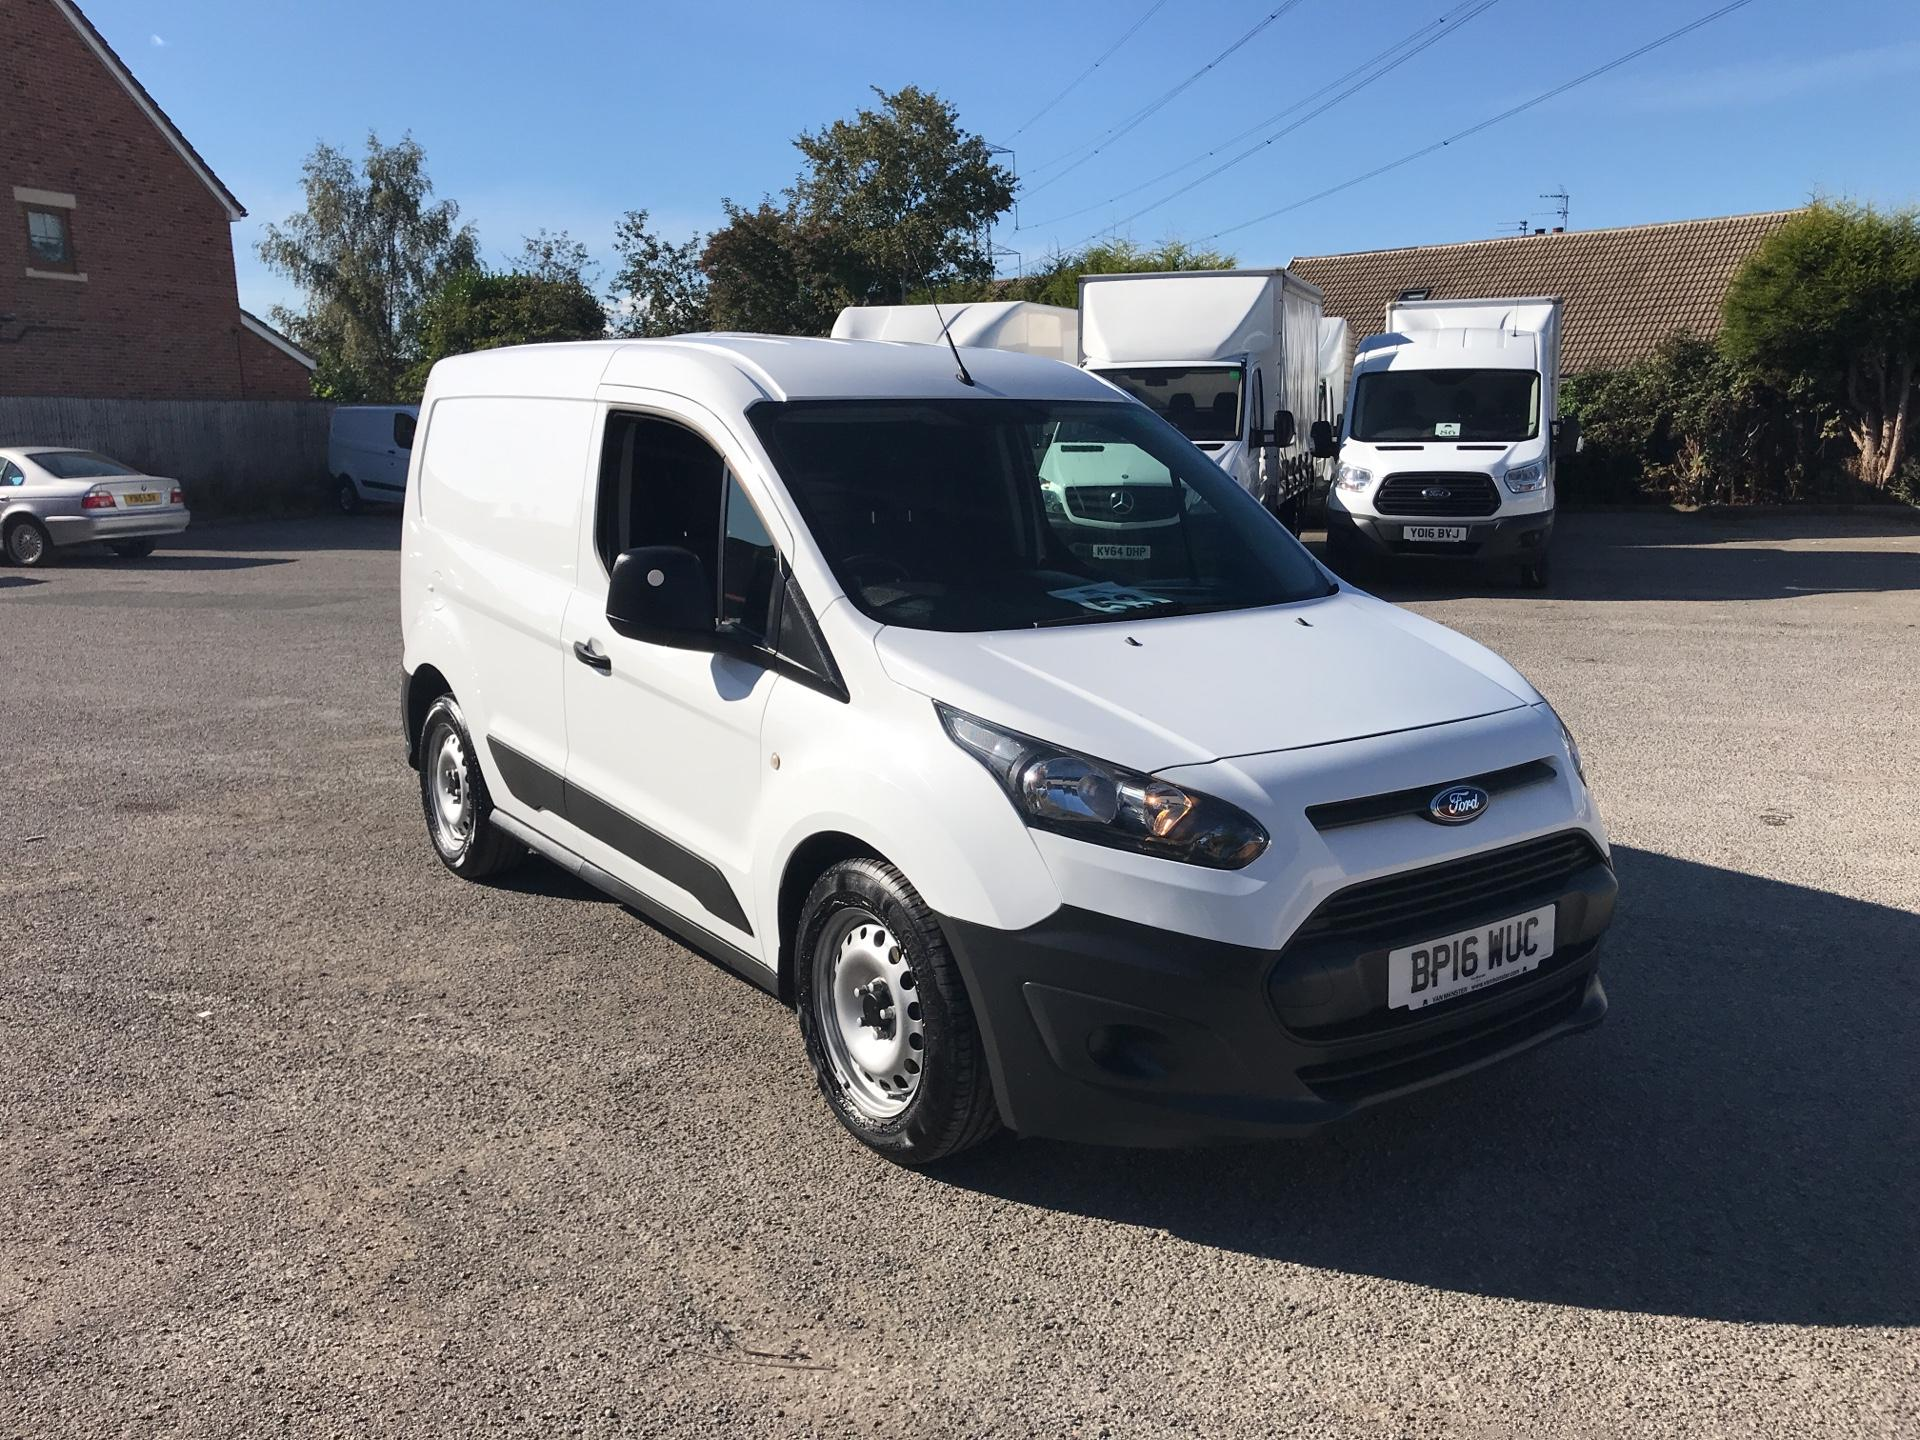 2016 Ford Transit Connect  200 L1 Diesel 1.6 TDCi 75PS Van EURO 5 (BP16WUC)